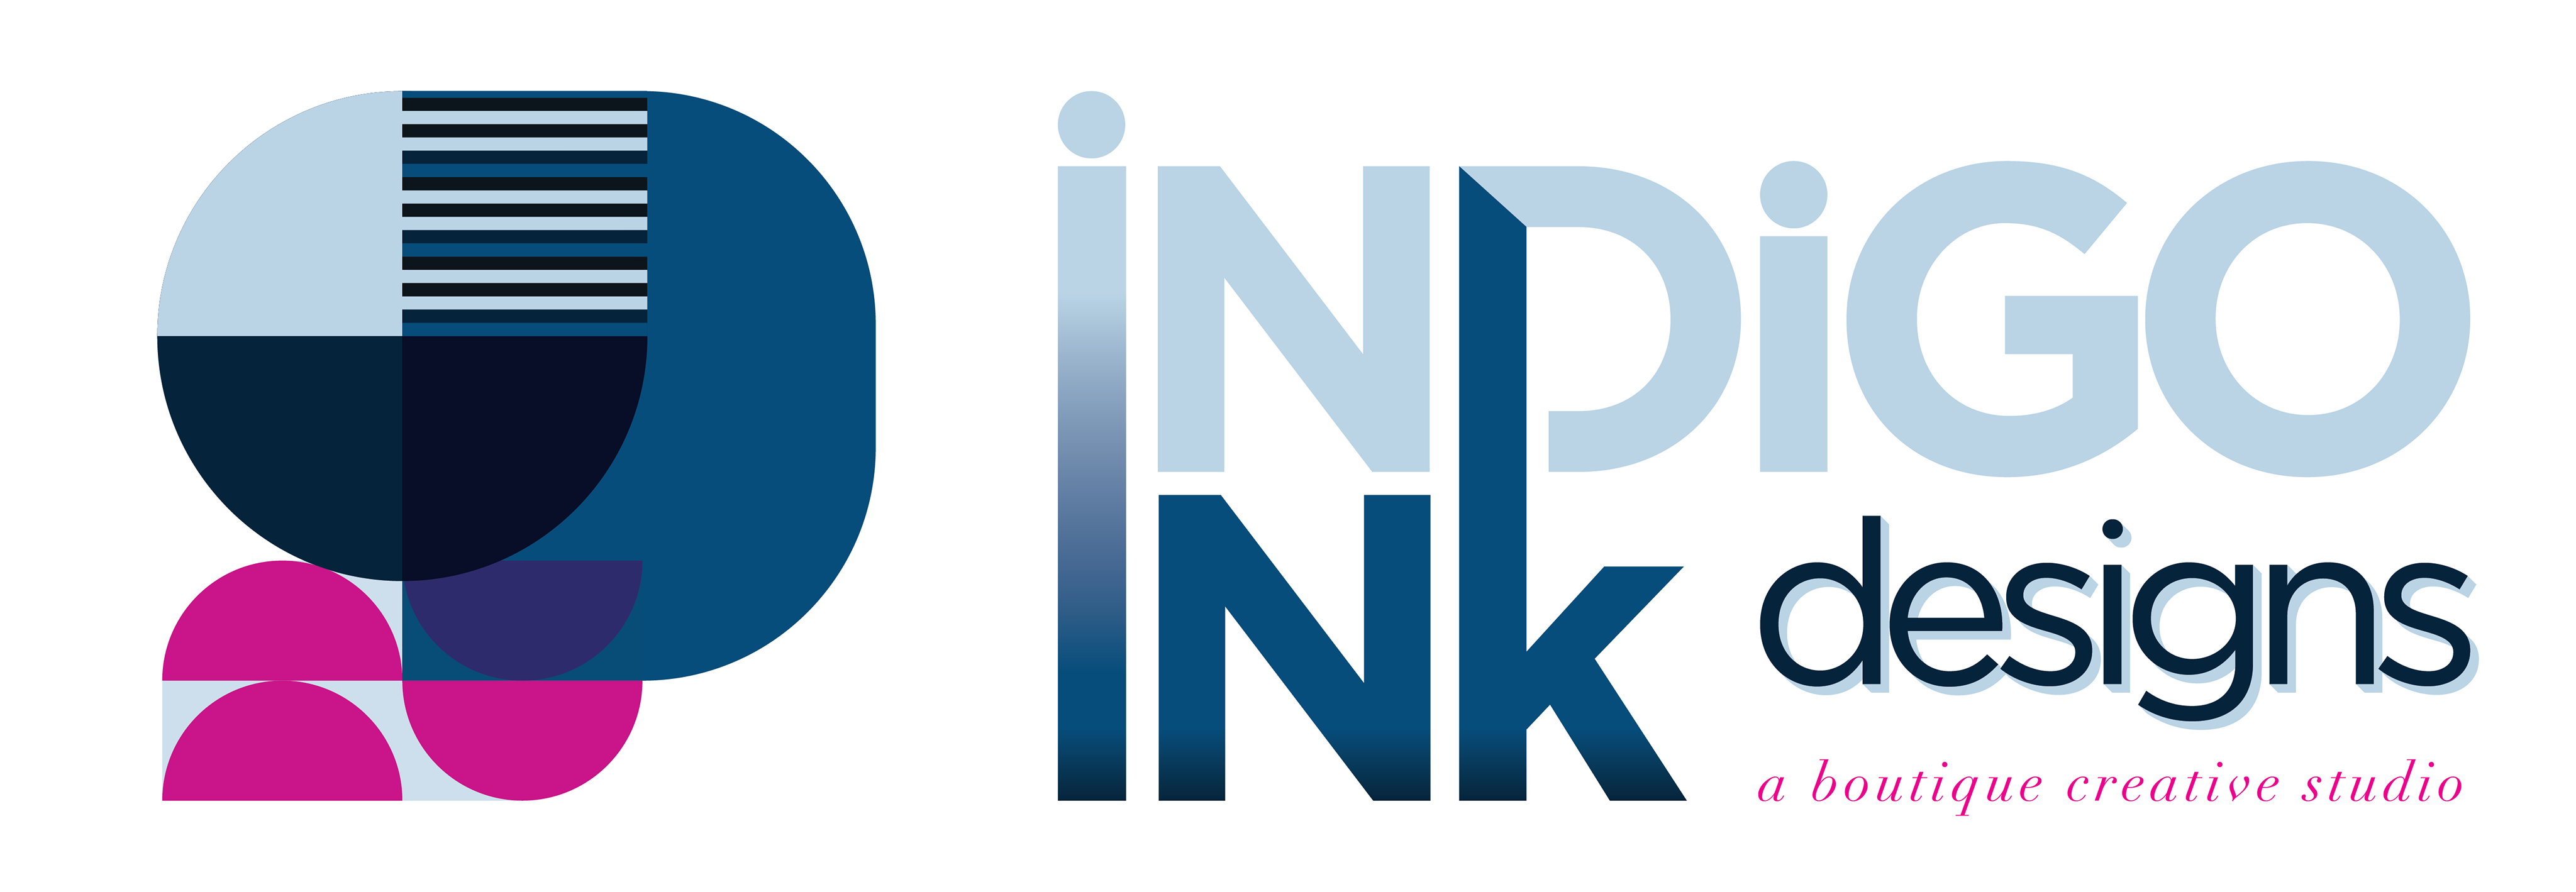 Indigo Ink Designs